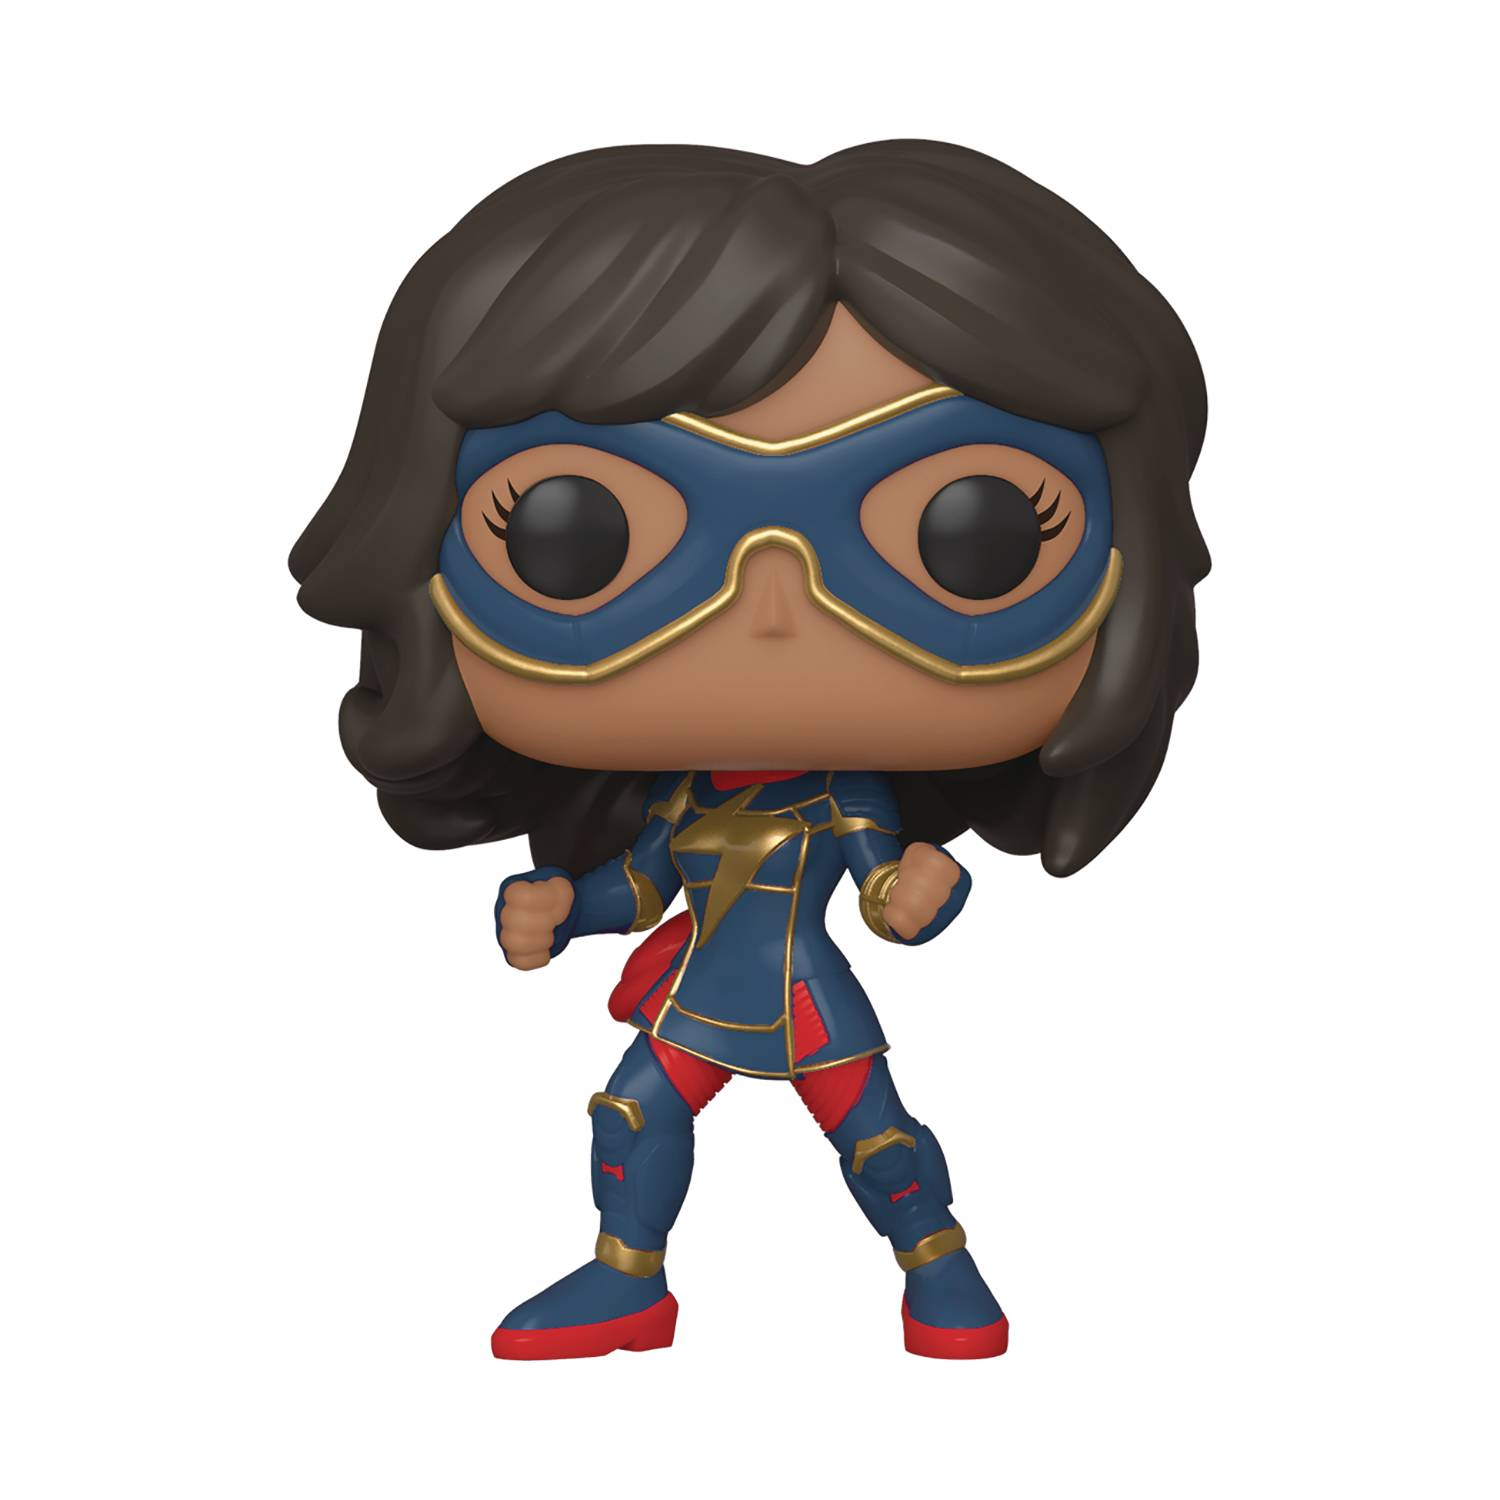 POP GAMES AVENGERS GAME KAMALA KHAN STARK TECH SUIT (C: 1-1- | L.A. Mood Comics and Games